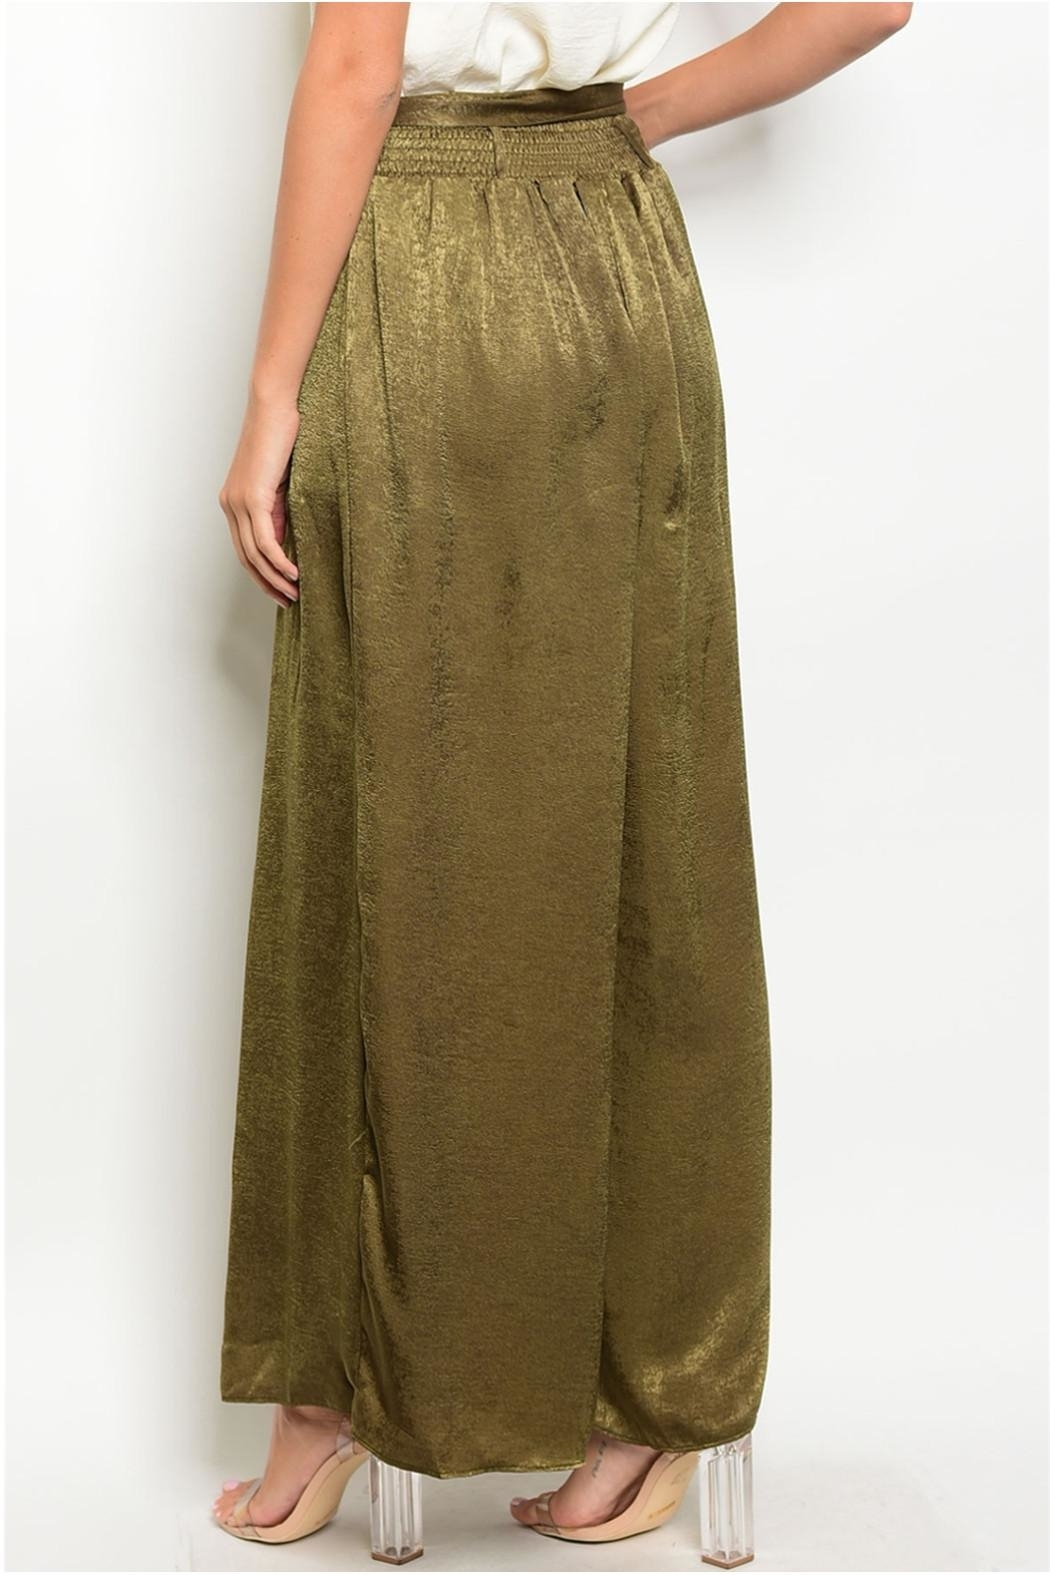 in the Beginning Olive Satin Palazzo Pants - Side Cropped Image